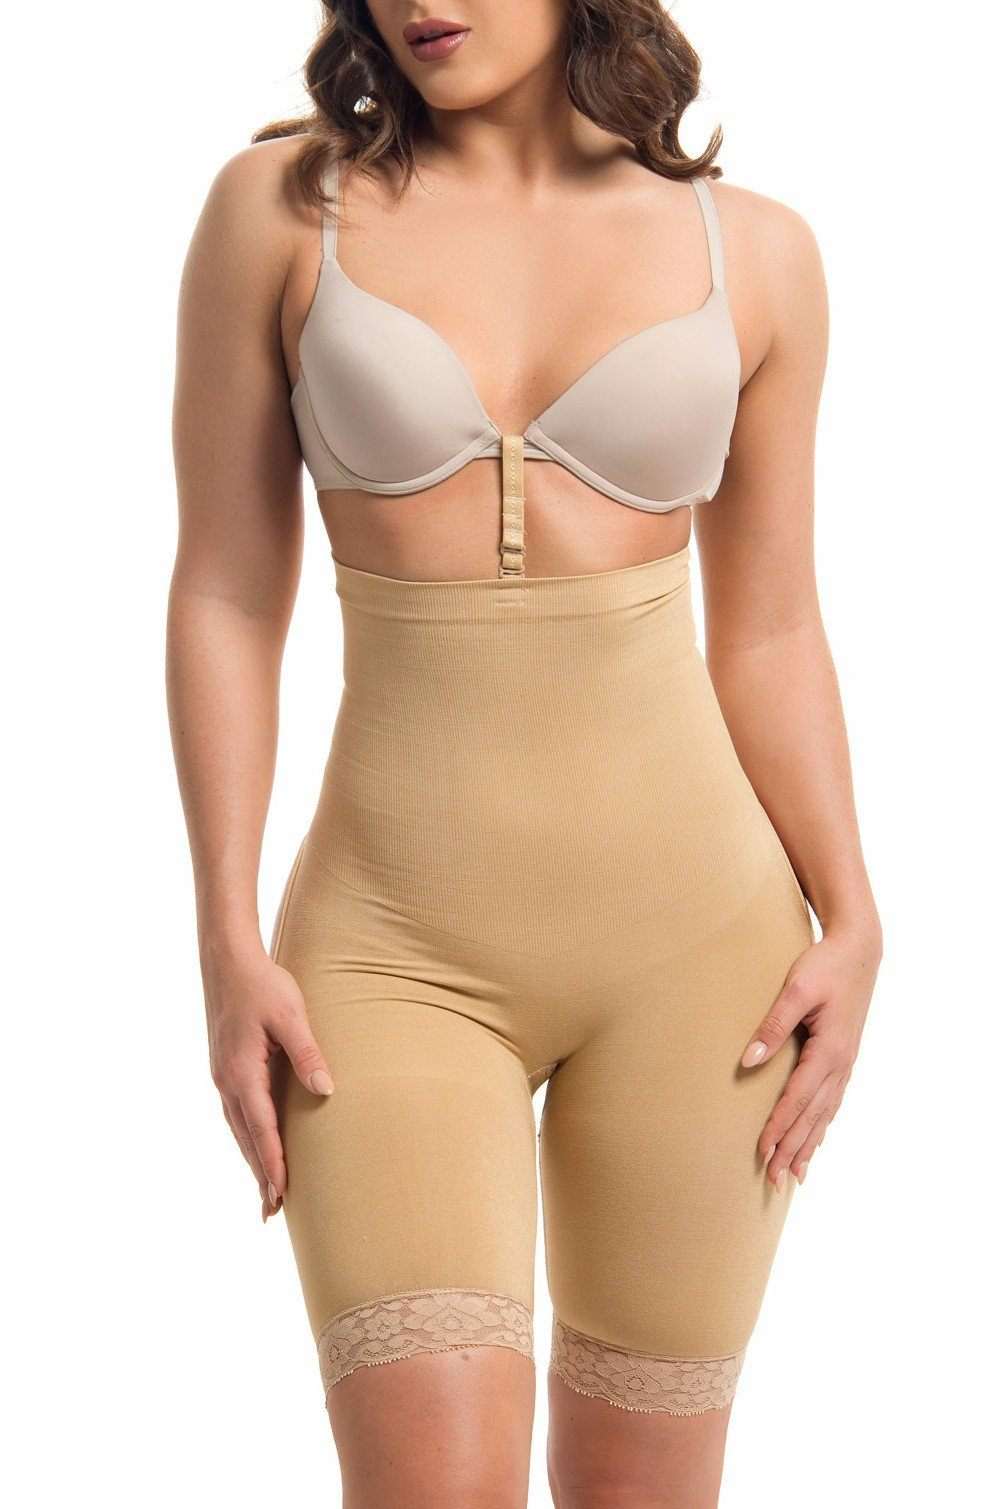 31481d8cbc1 High Waisted Body Shaper   Butt Lifter NUDE -RESTOCKED – Fashion ...